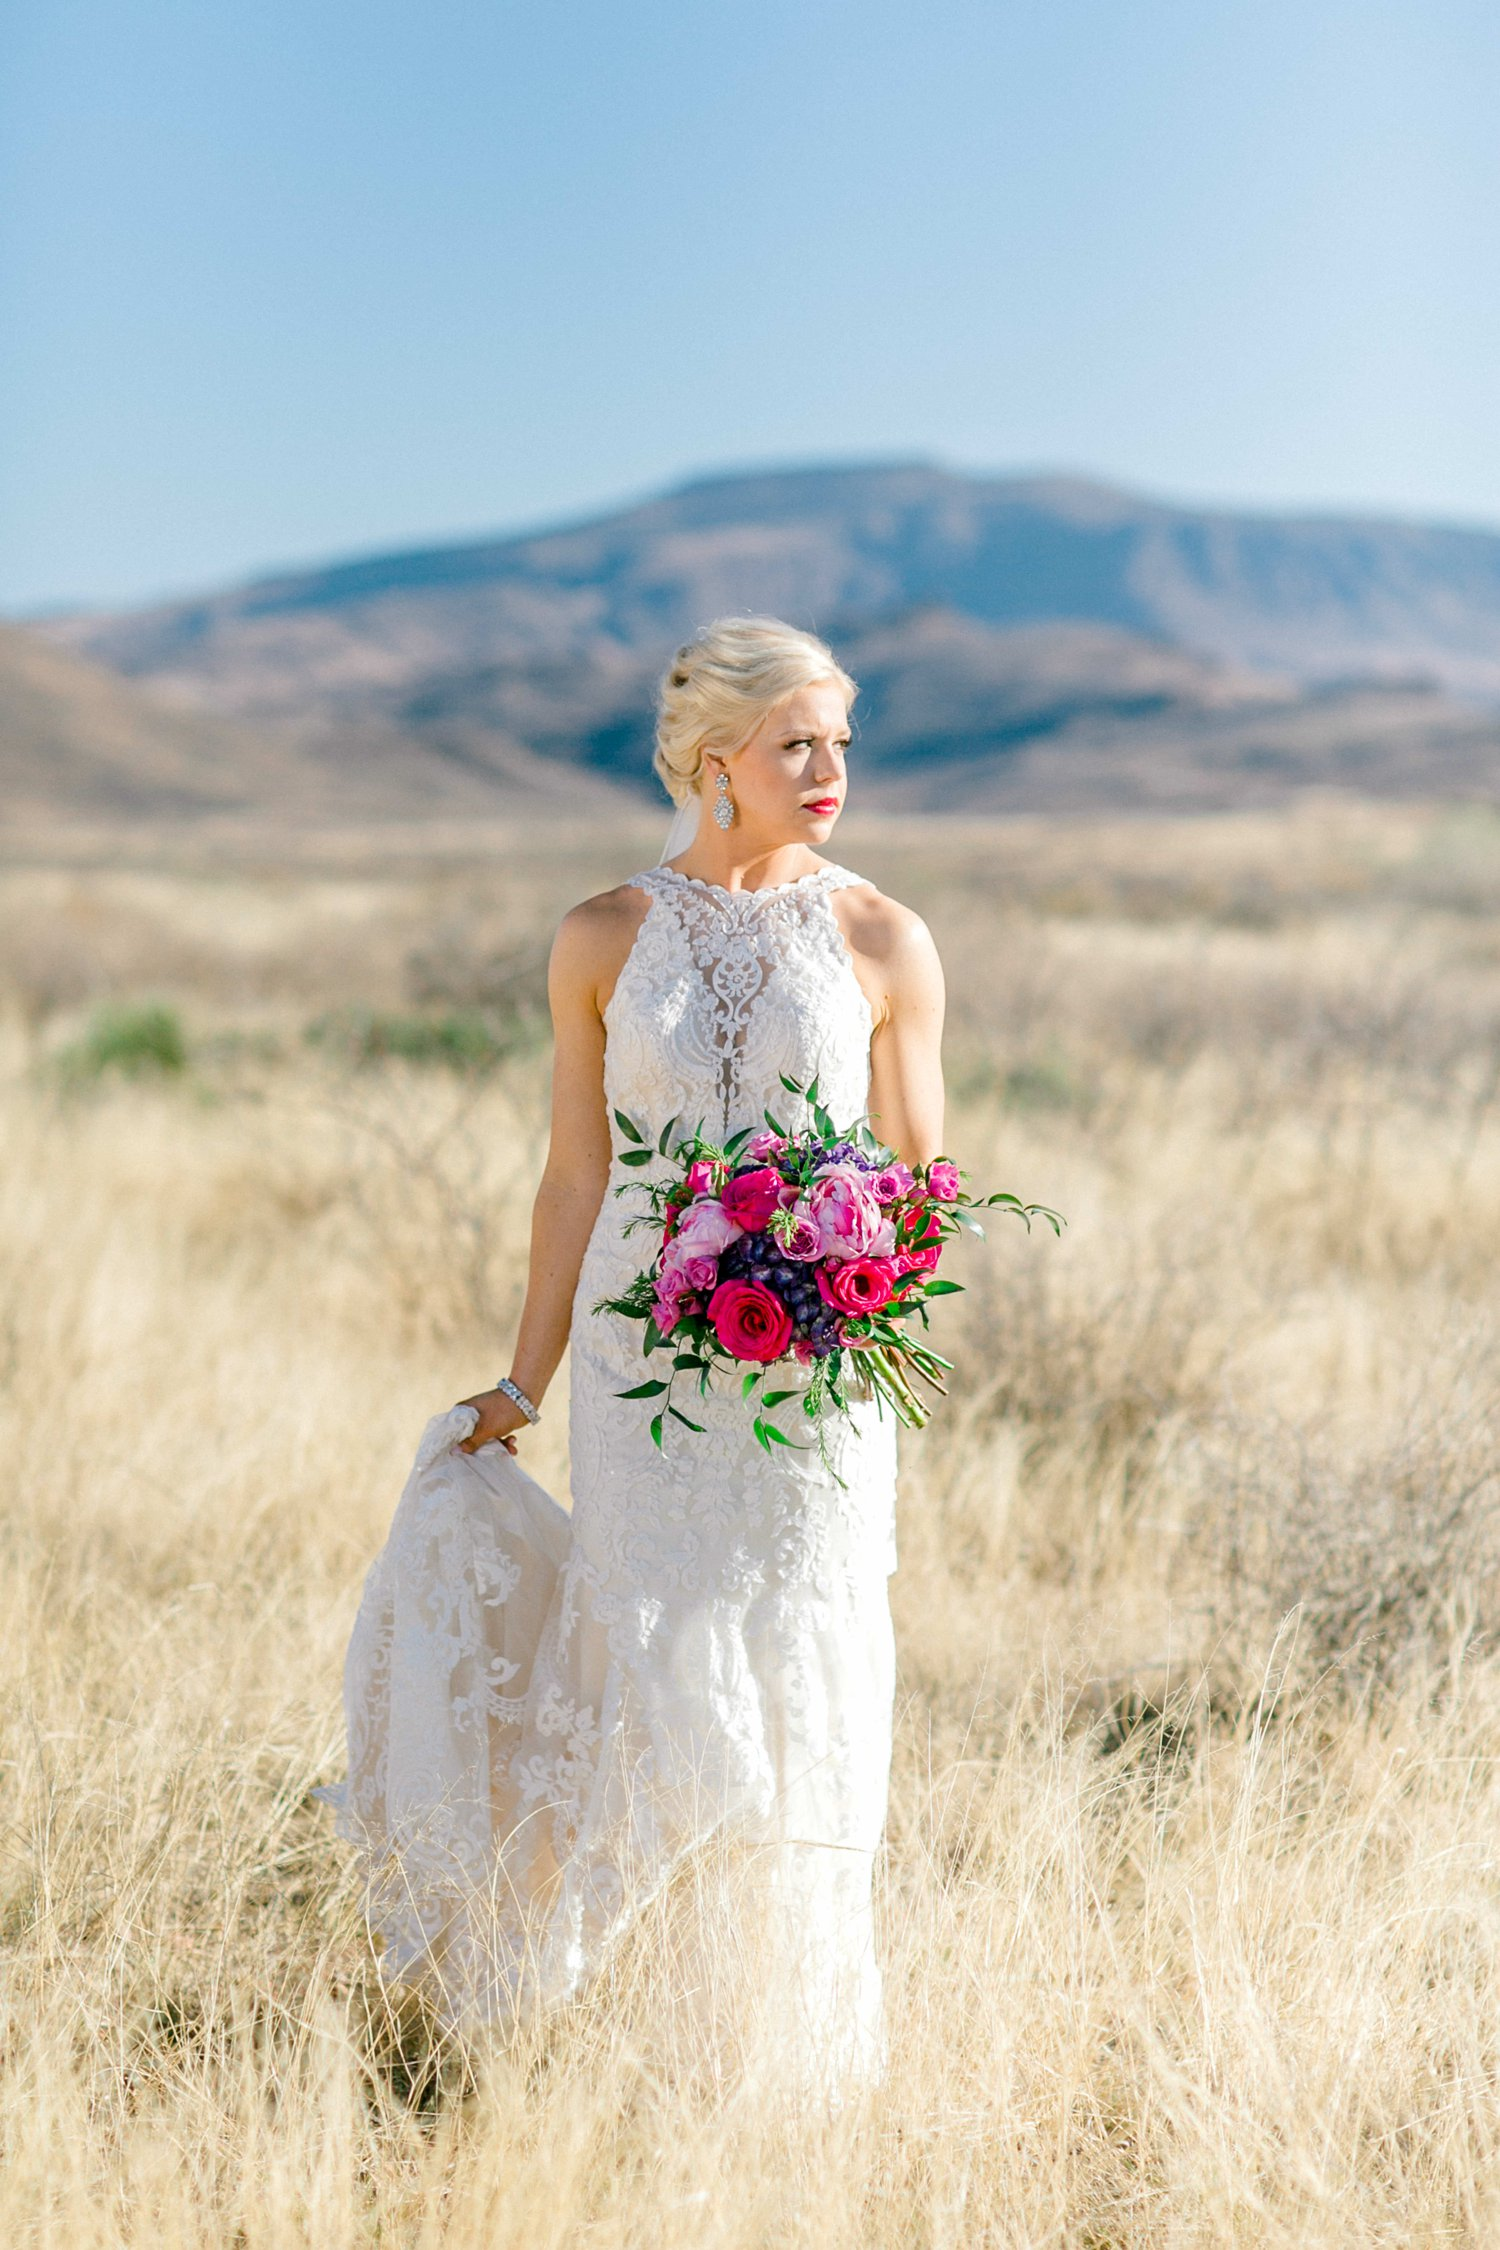 Jenna-evans-bridals-balmorhea-texas-fort-davis-wedding-photographer-lubbock-photographer__0016.jpg